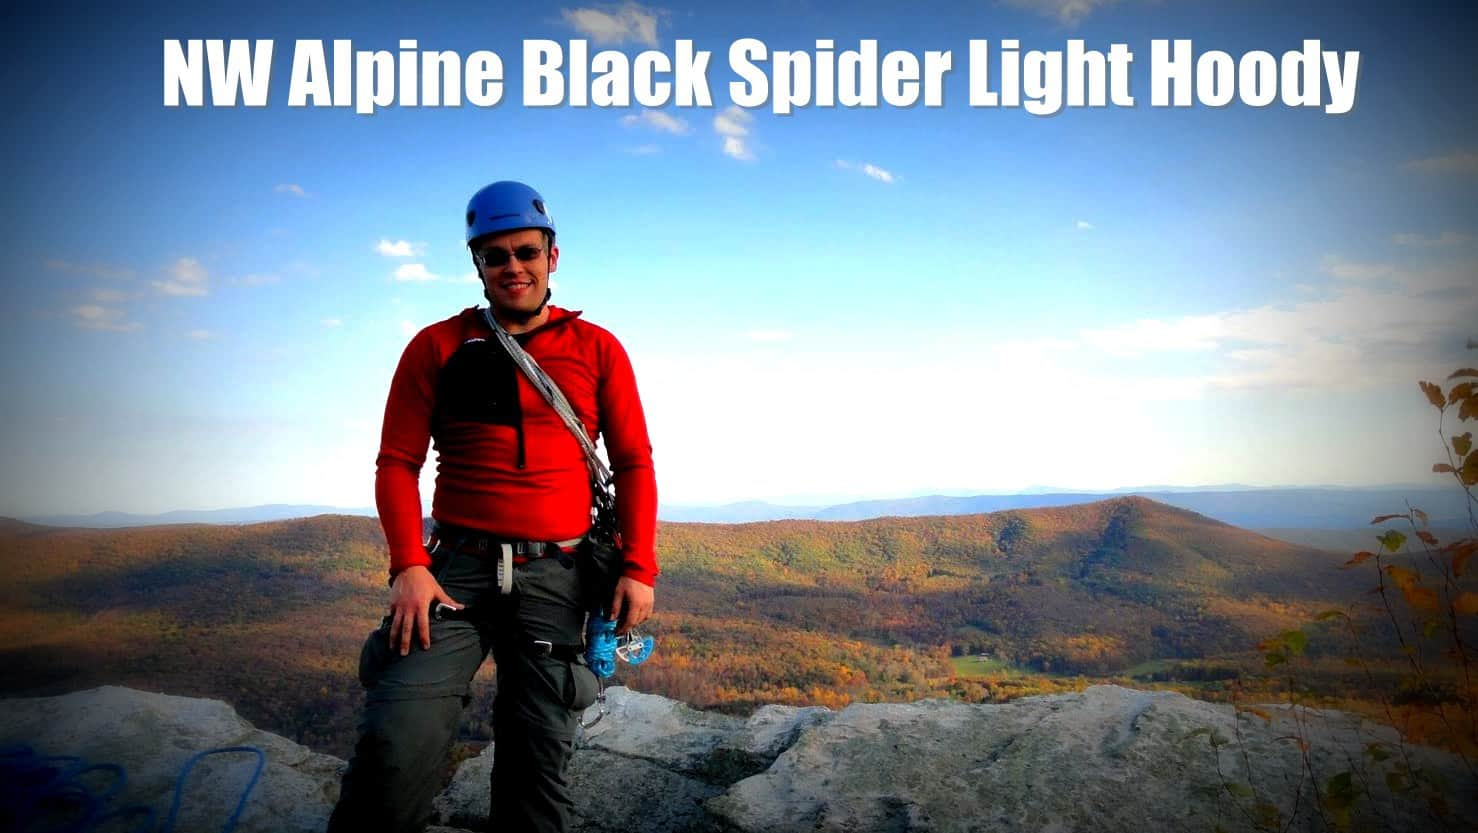 NW Alpine Black Spider Light Hoody